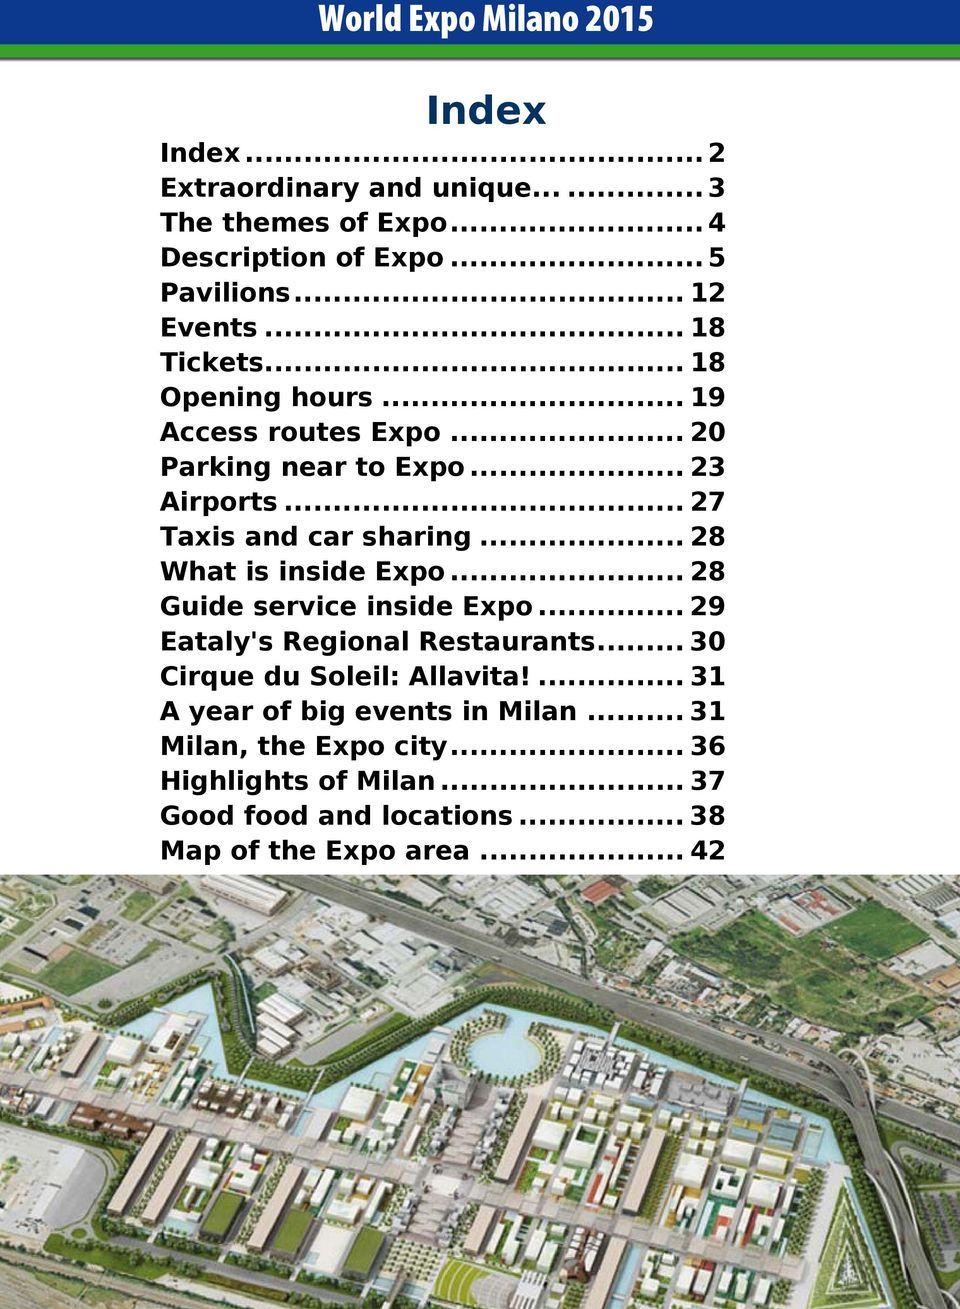 .. 27 Taxis and car sharing... 28 What is inside Expo... 28 Guide service inside Expo... 29 Eataly's Regional Restaurants.